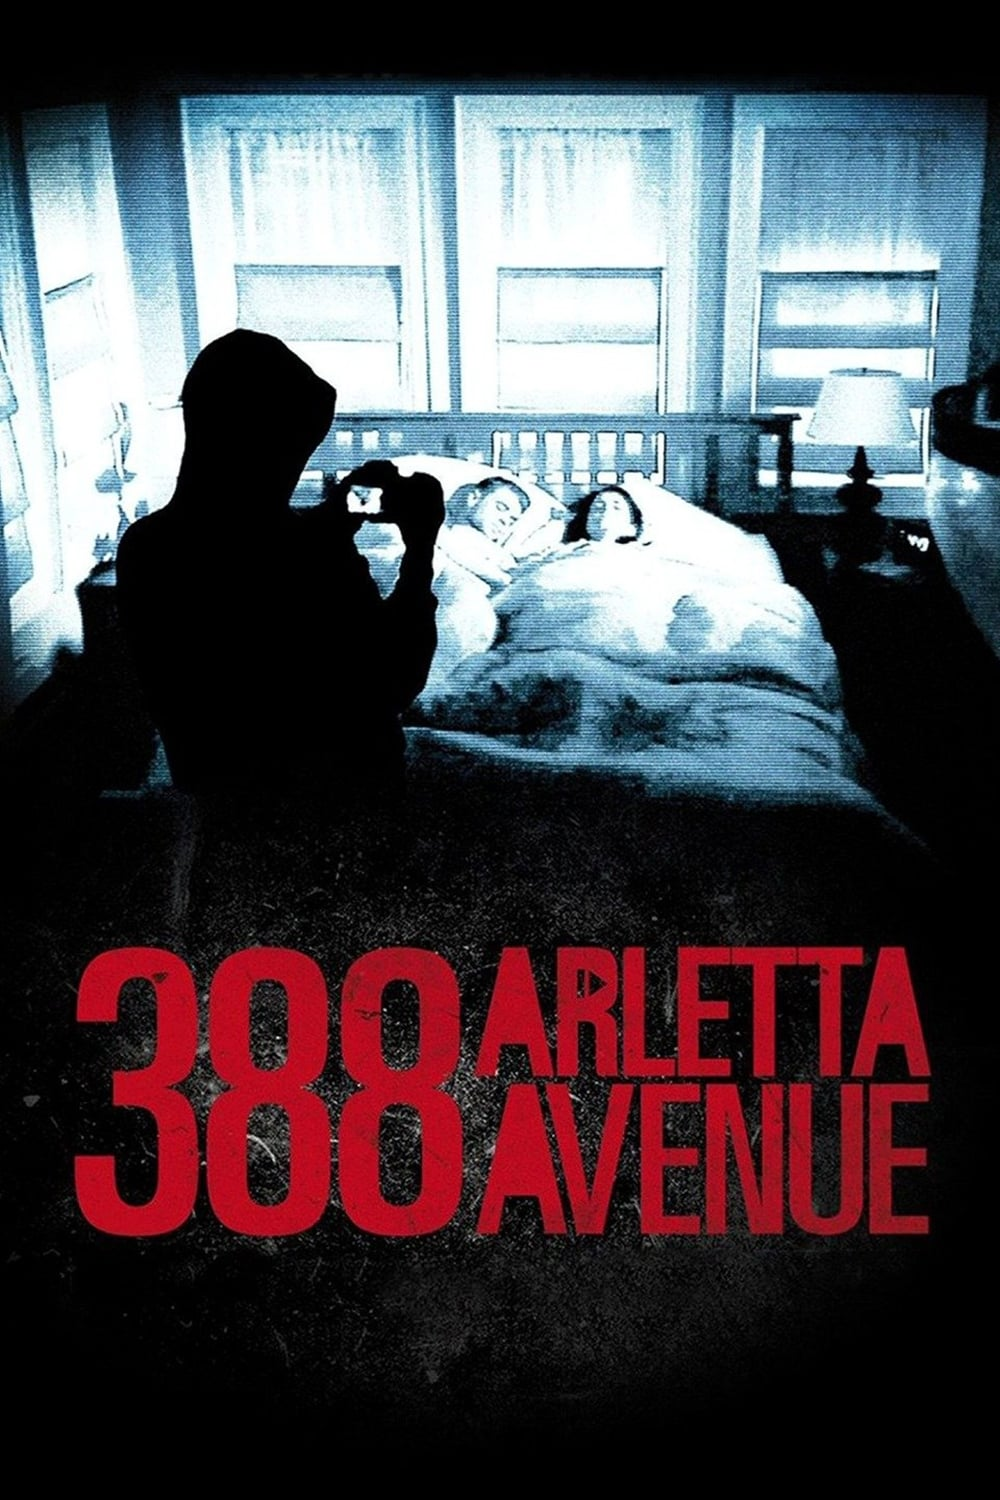 388 Arletta Avenue on FREECABLE TV